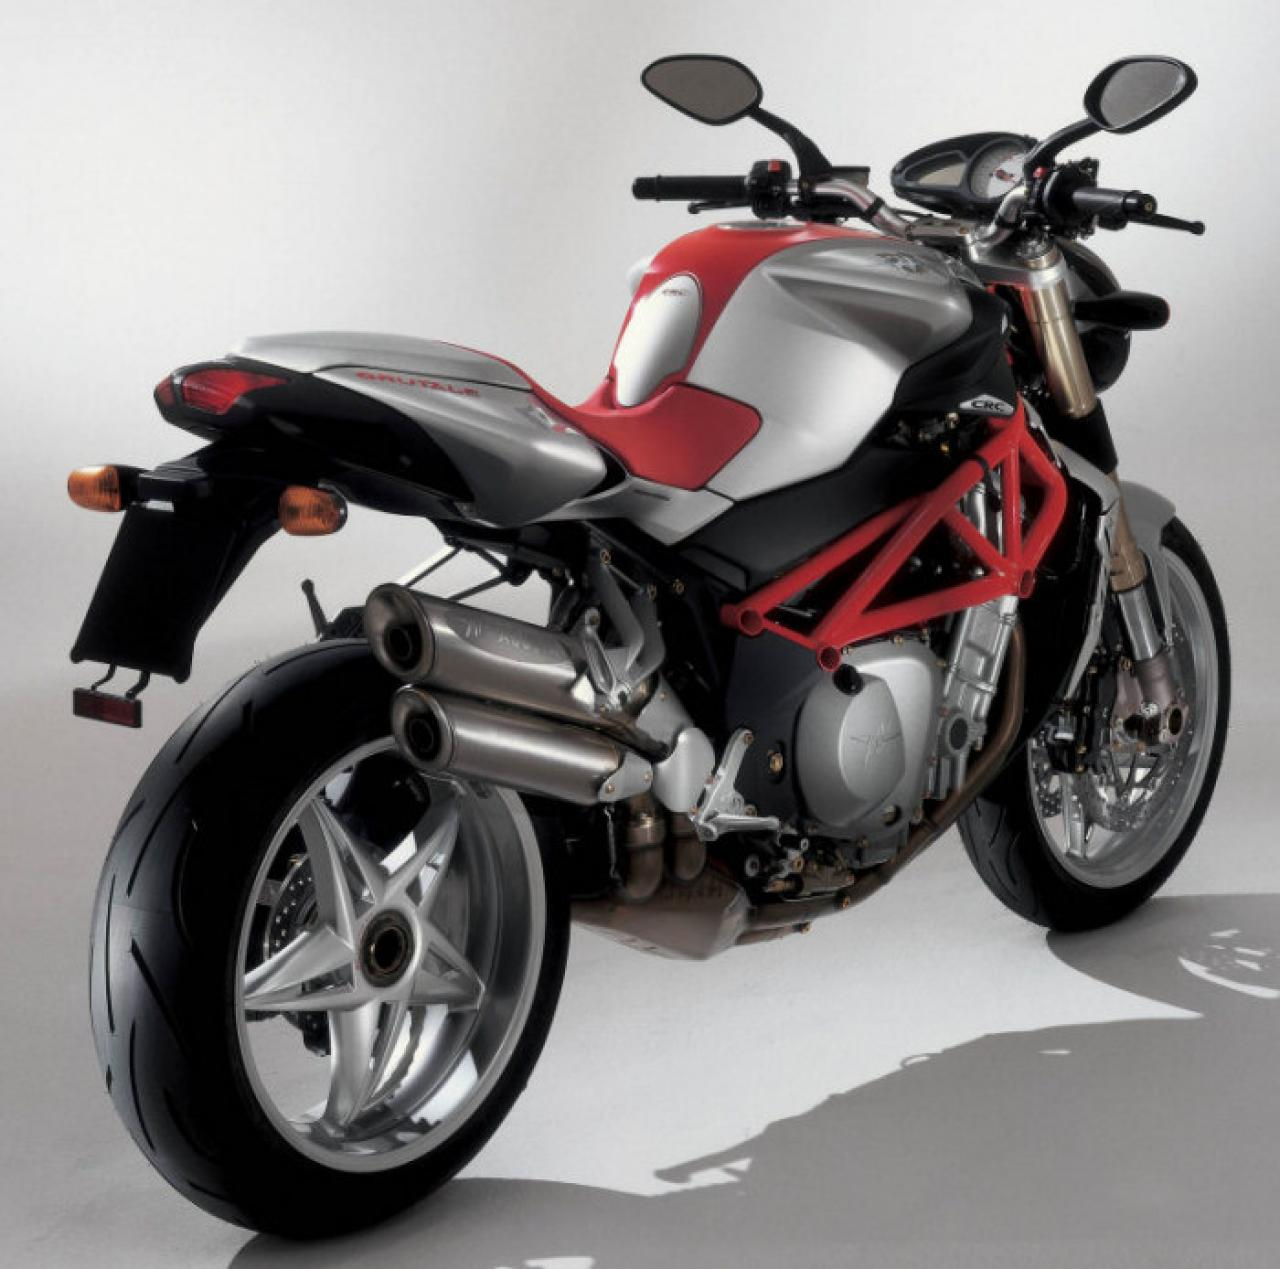 2008 mv agusta brutale 750s moto zombdrive com. Black Bedroom Furniture Sets. Home Design Ideas